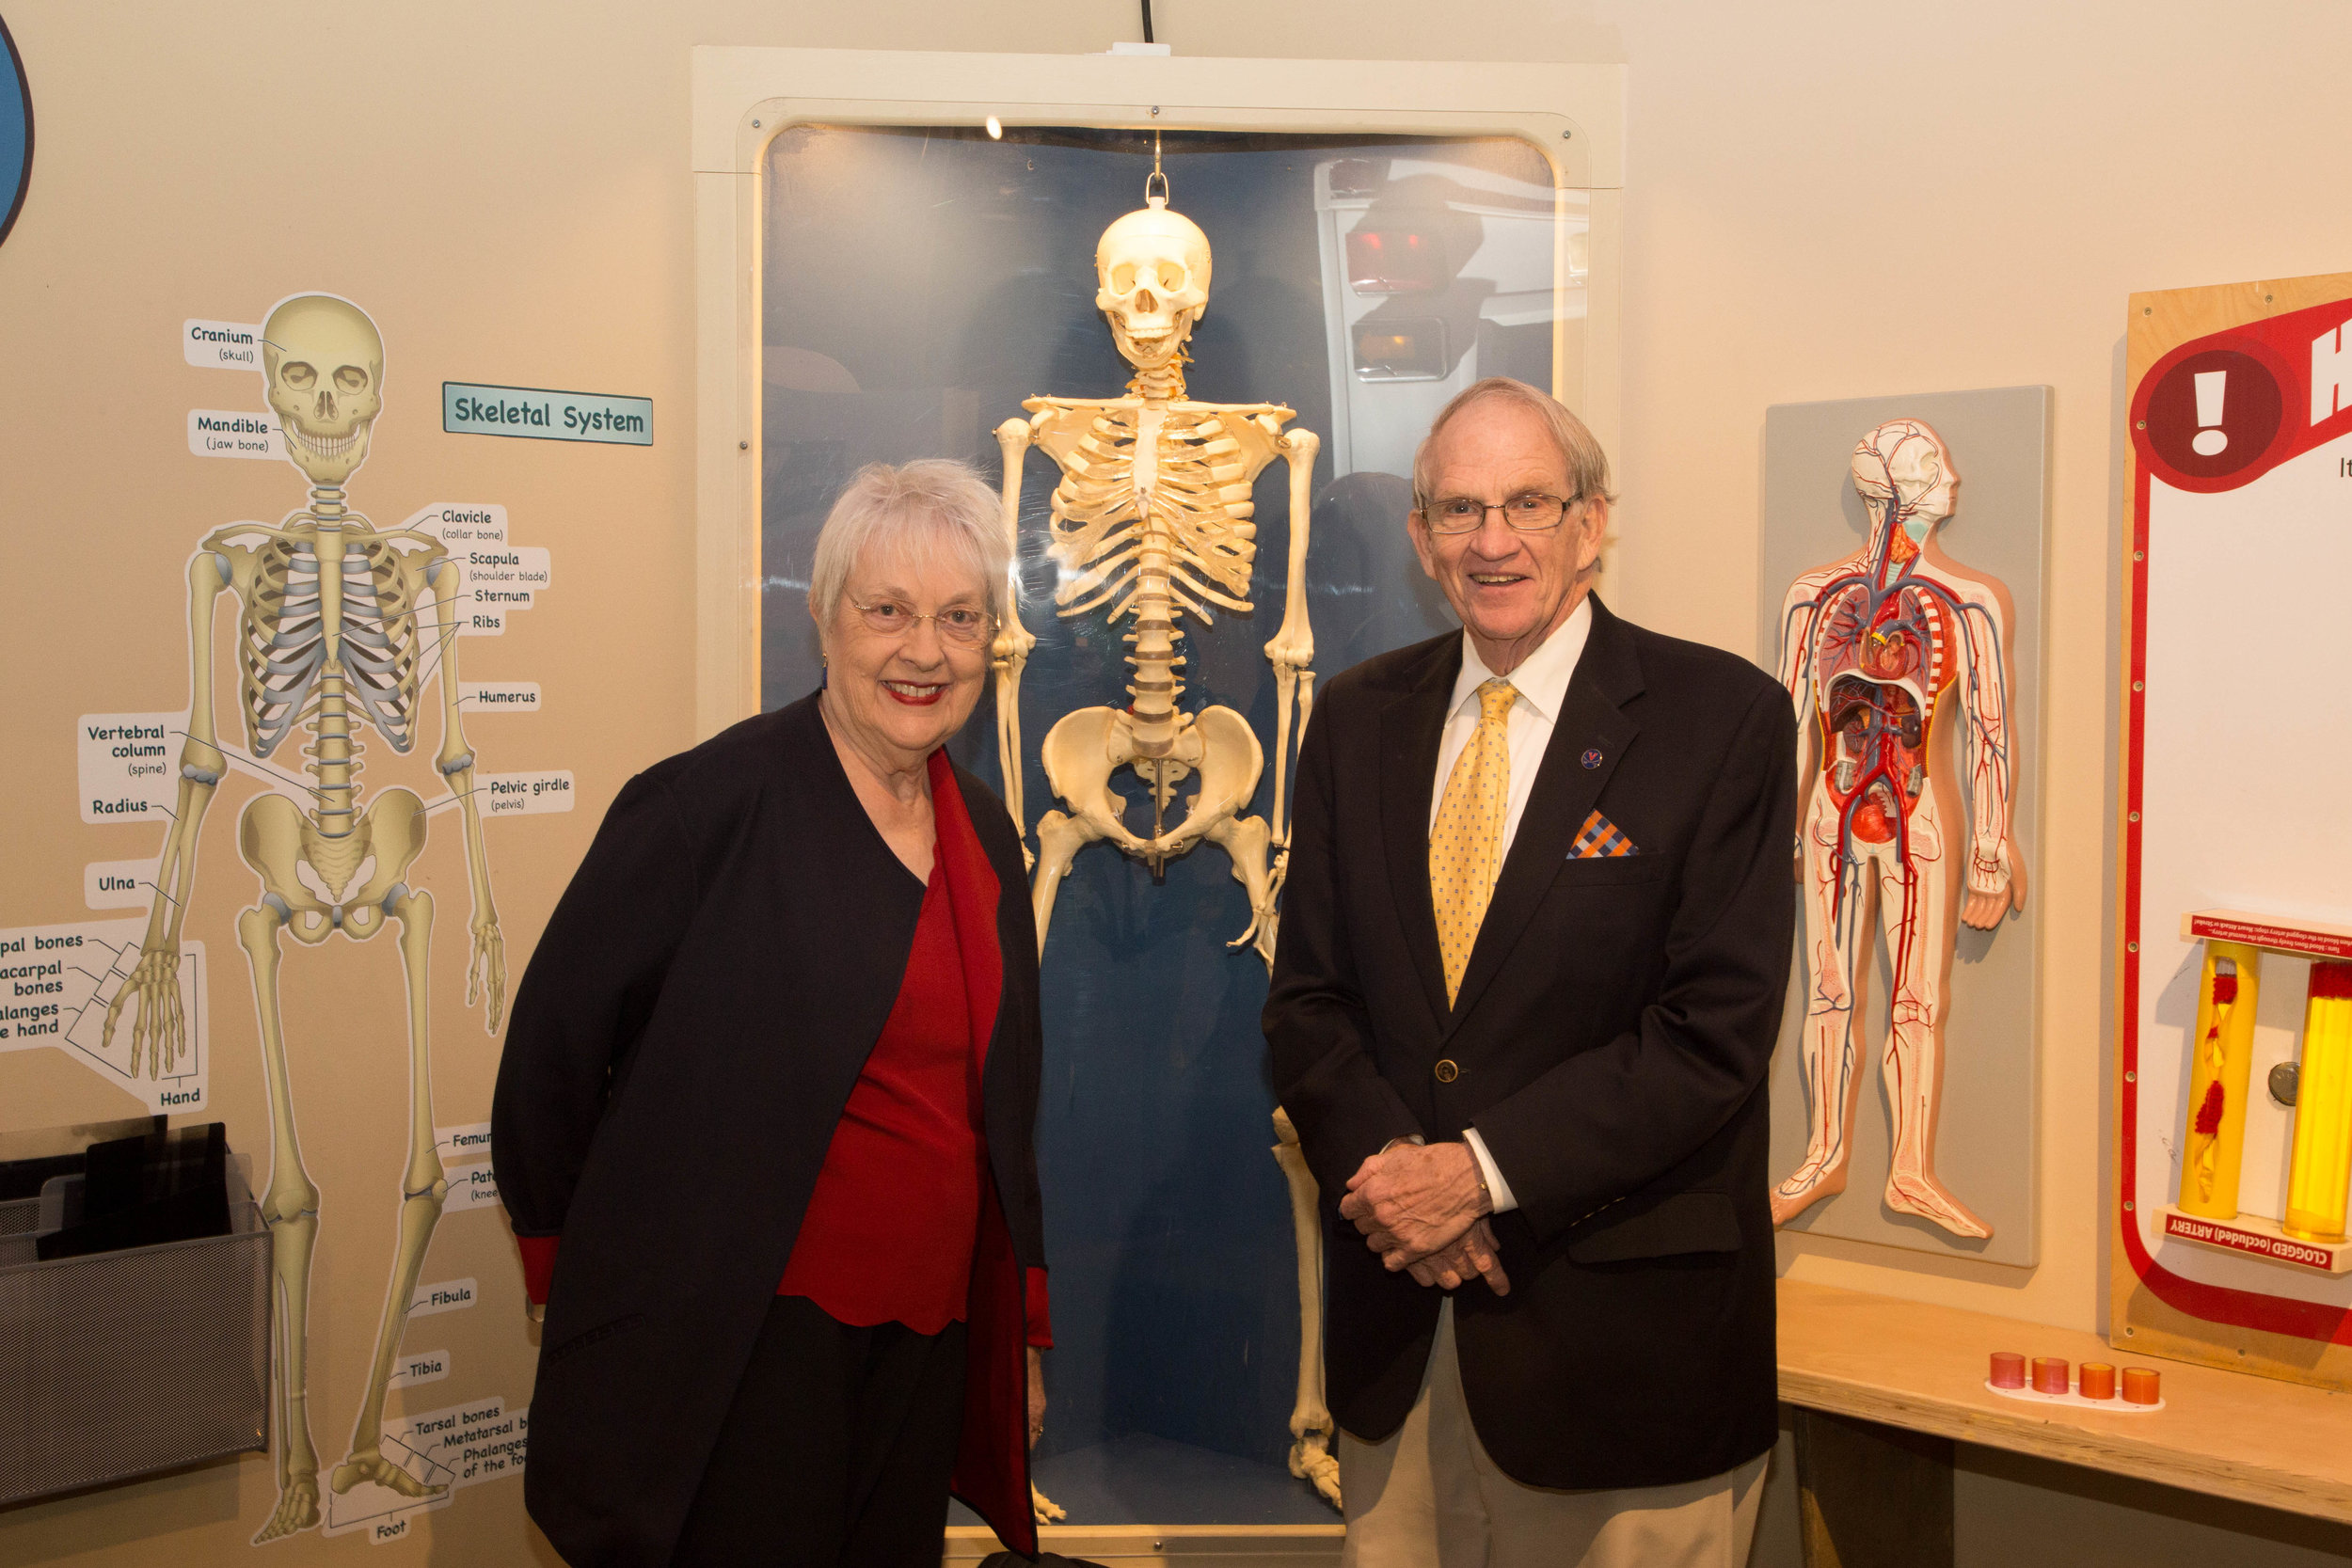 Charles, a retired physician, and wife Mary pose next to the skeleton, a staple of the museum for 15 years!